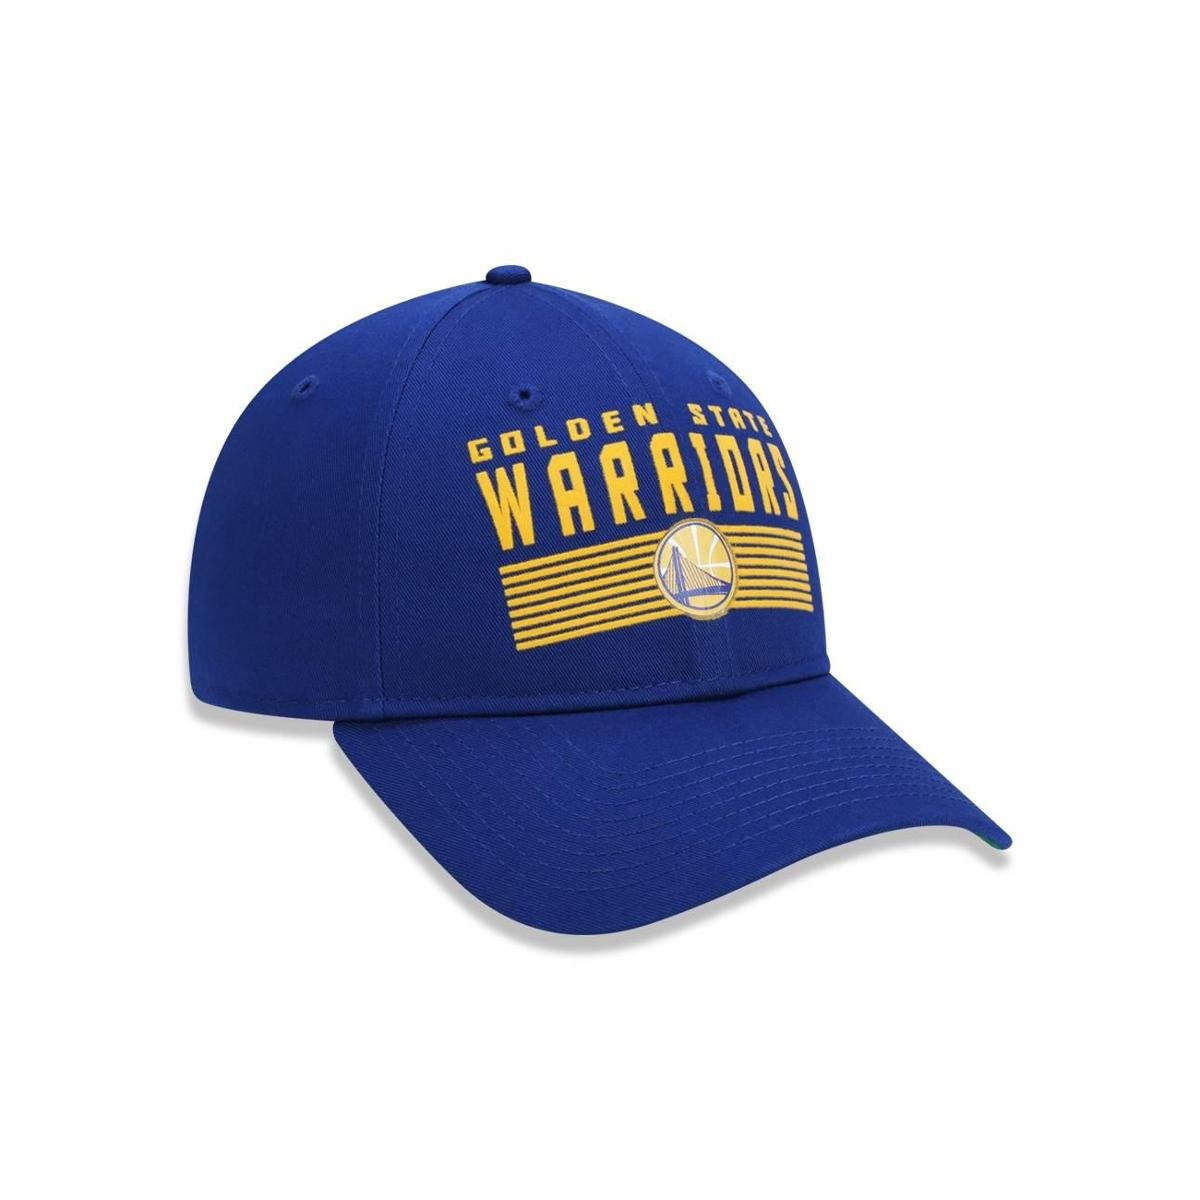 ... Boné 920 Golden State Warriors NBA Aba Curva Strapback New Era ... c8d2033a37f